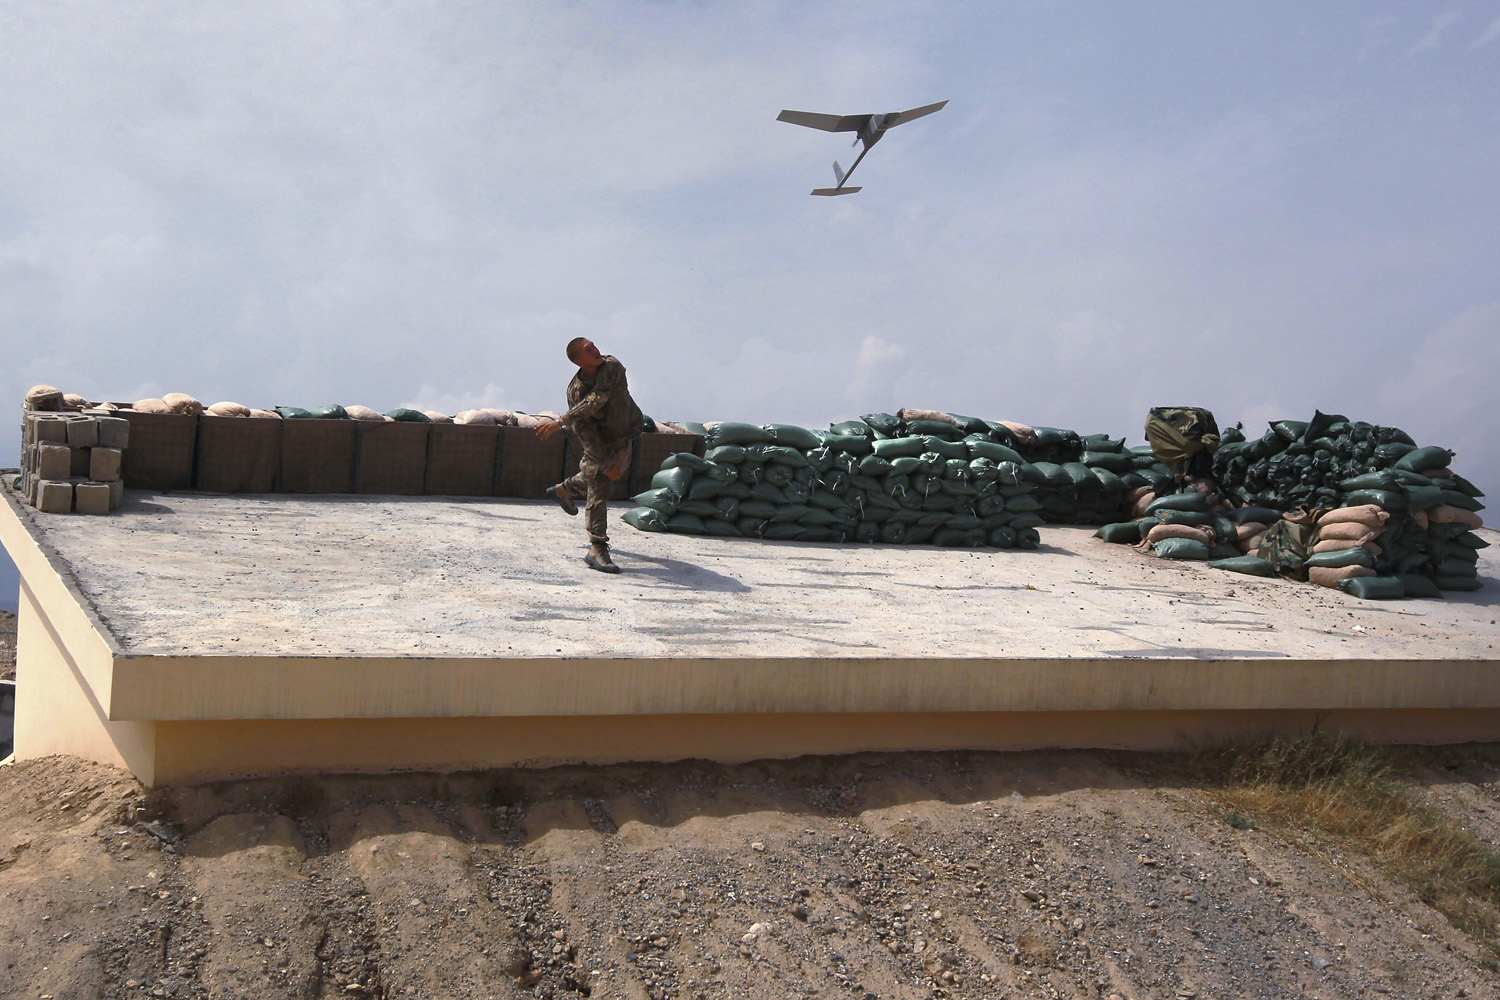 August 30, 2011. U.S. Army Sgt. Don Stolle launches a Raven surveillance drone into the air from the Afghan government district center in Achin, Afghanistan.